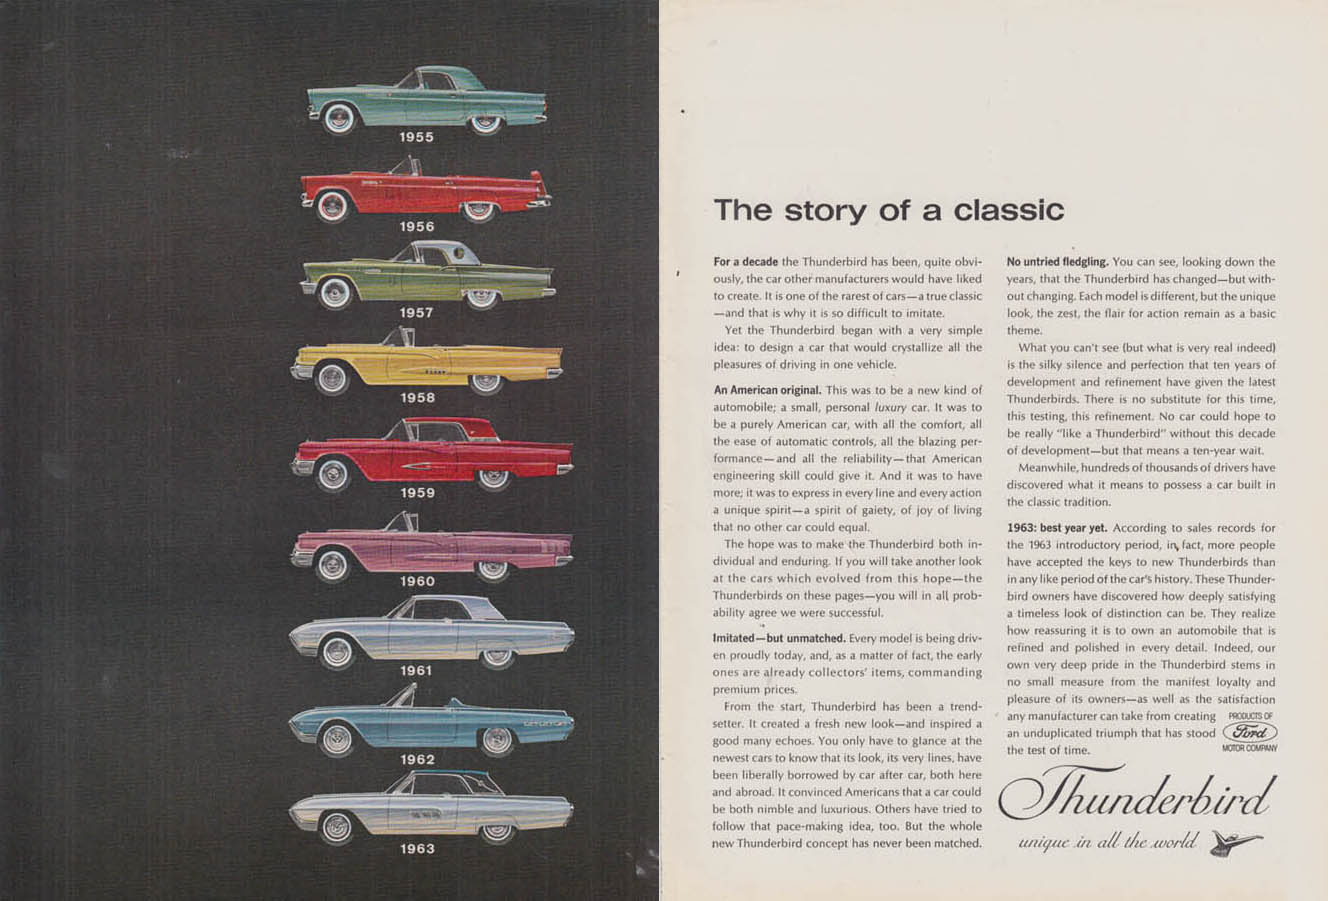 Image for The story of a classic Ford Thunderbird 1955-1963 ad 1963 NY